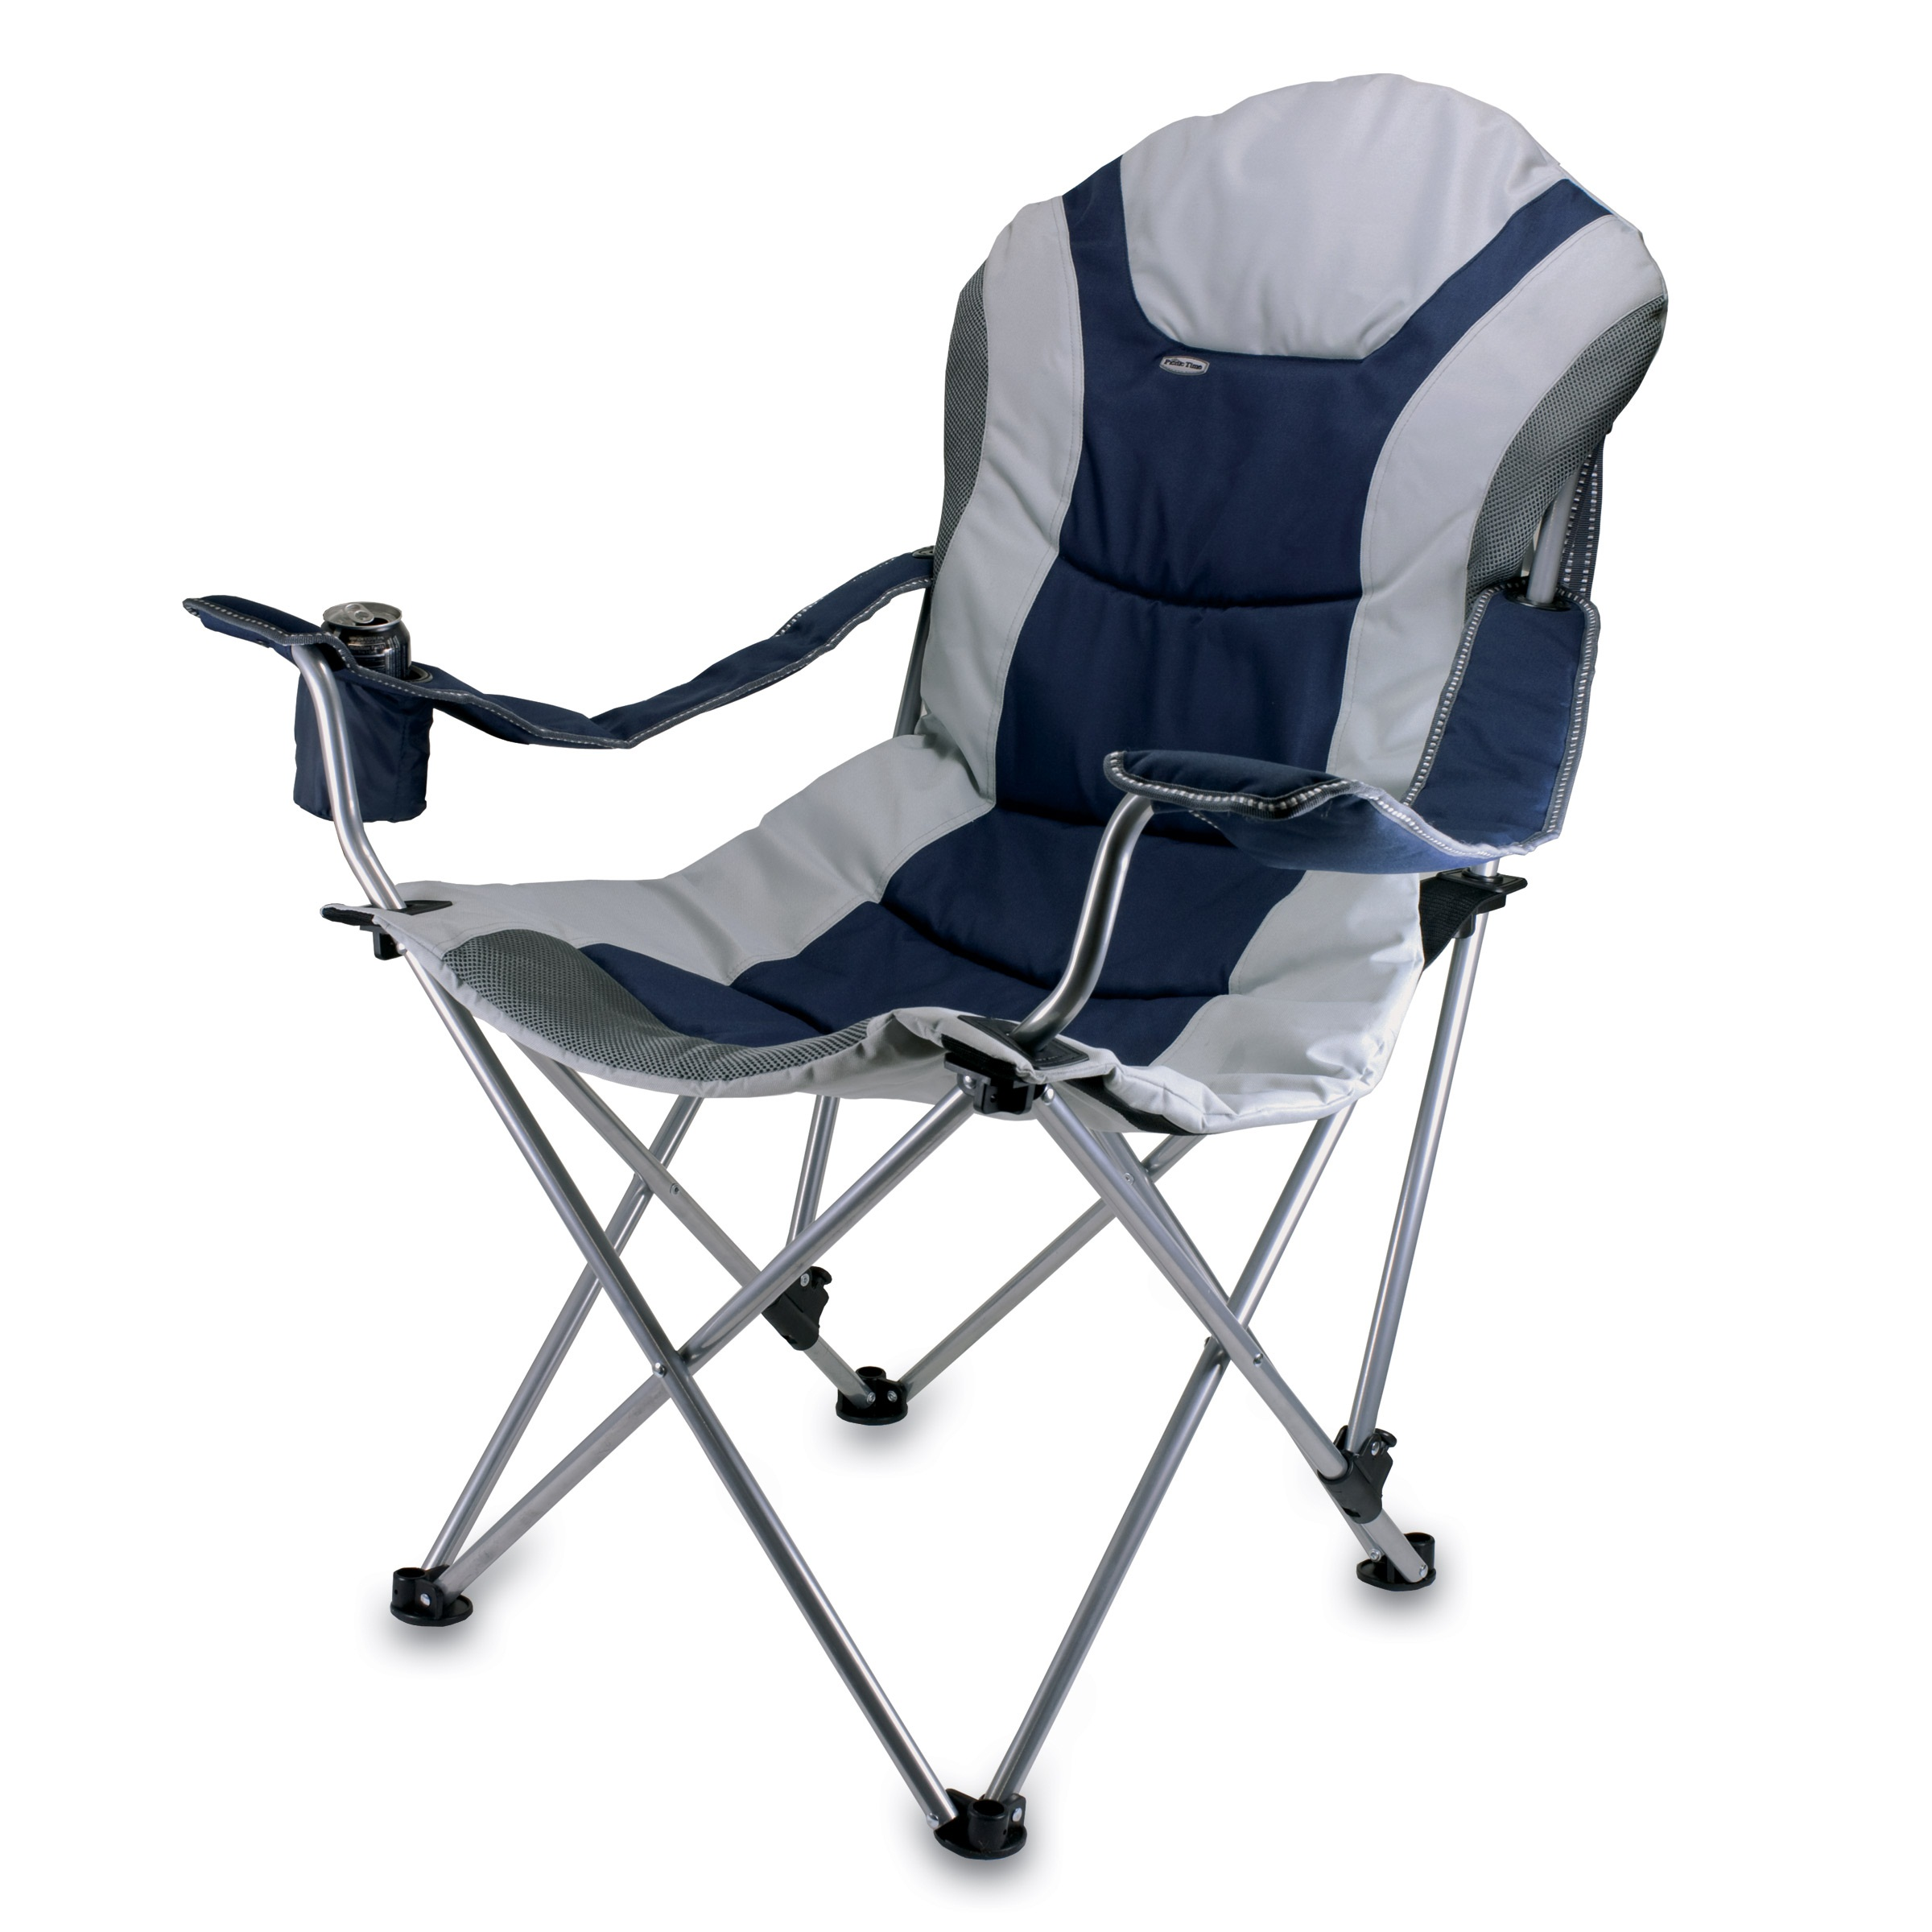 natural gear folding chair steel easy online picnic time reclining camp navy and gray